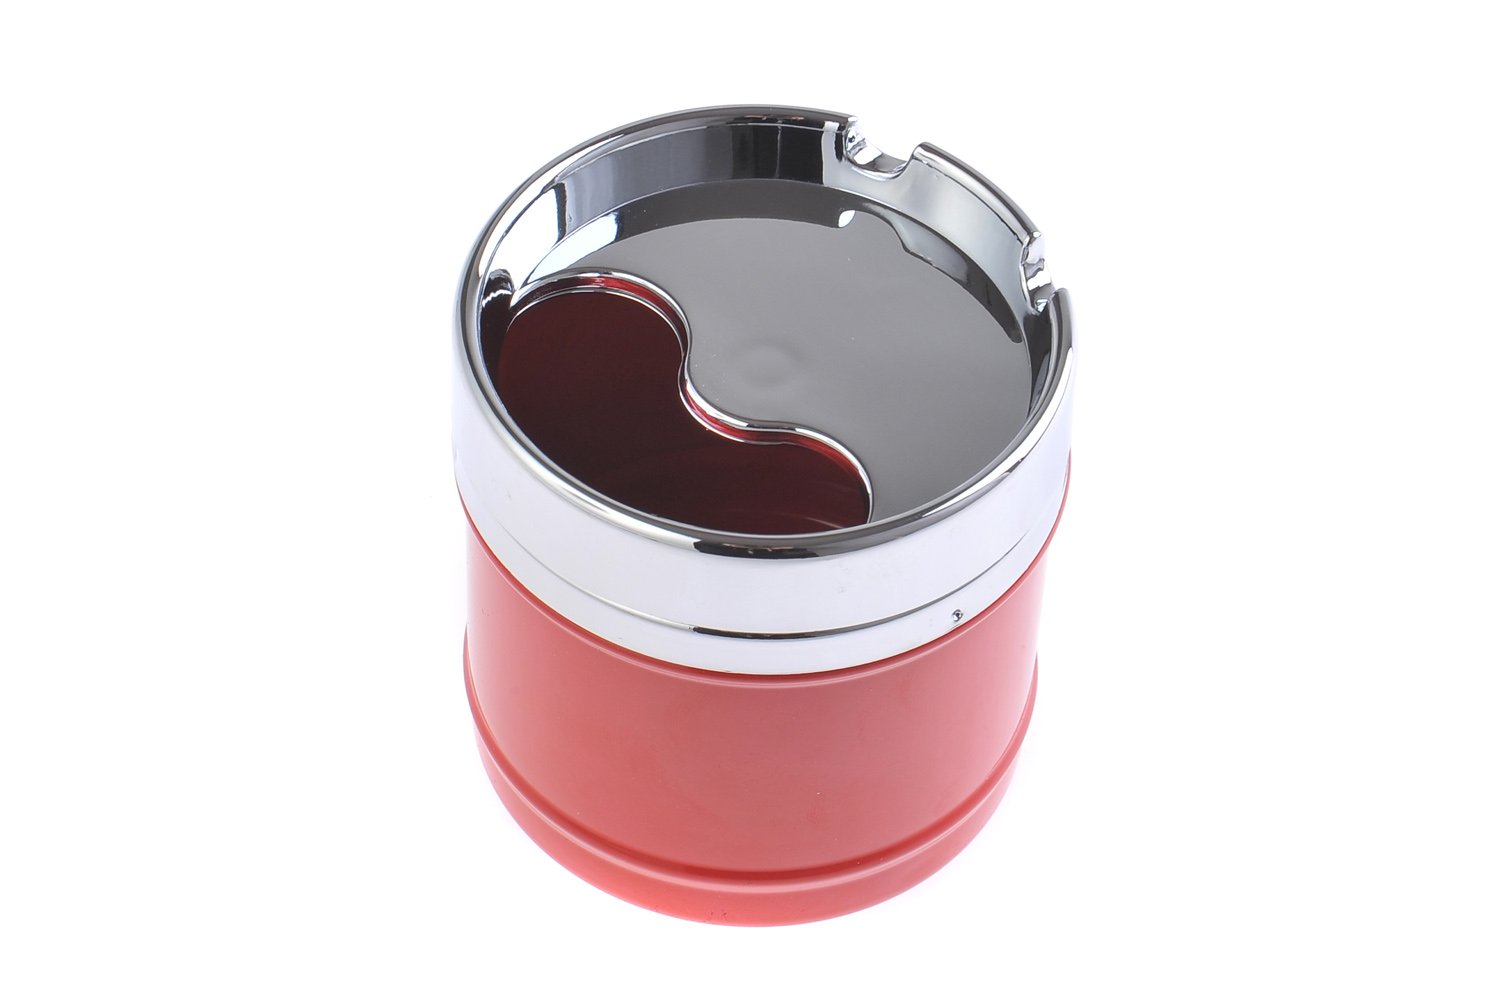 The Khan Outdoor & Lifestyle Company Elegant Zinc Alloy Round Covered Ashtray Cup, American Diner Style, red, Mod. 817-01 (DE)